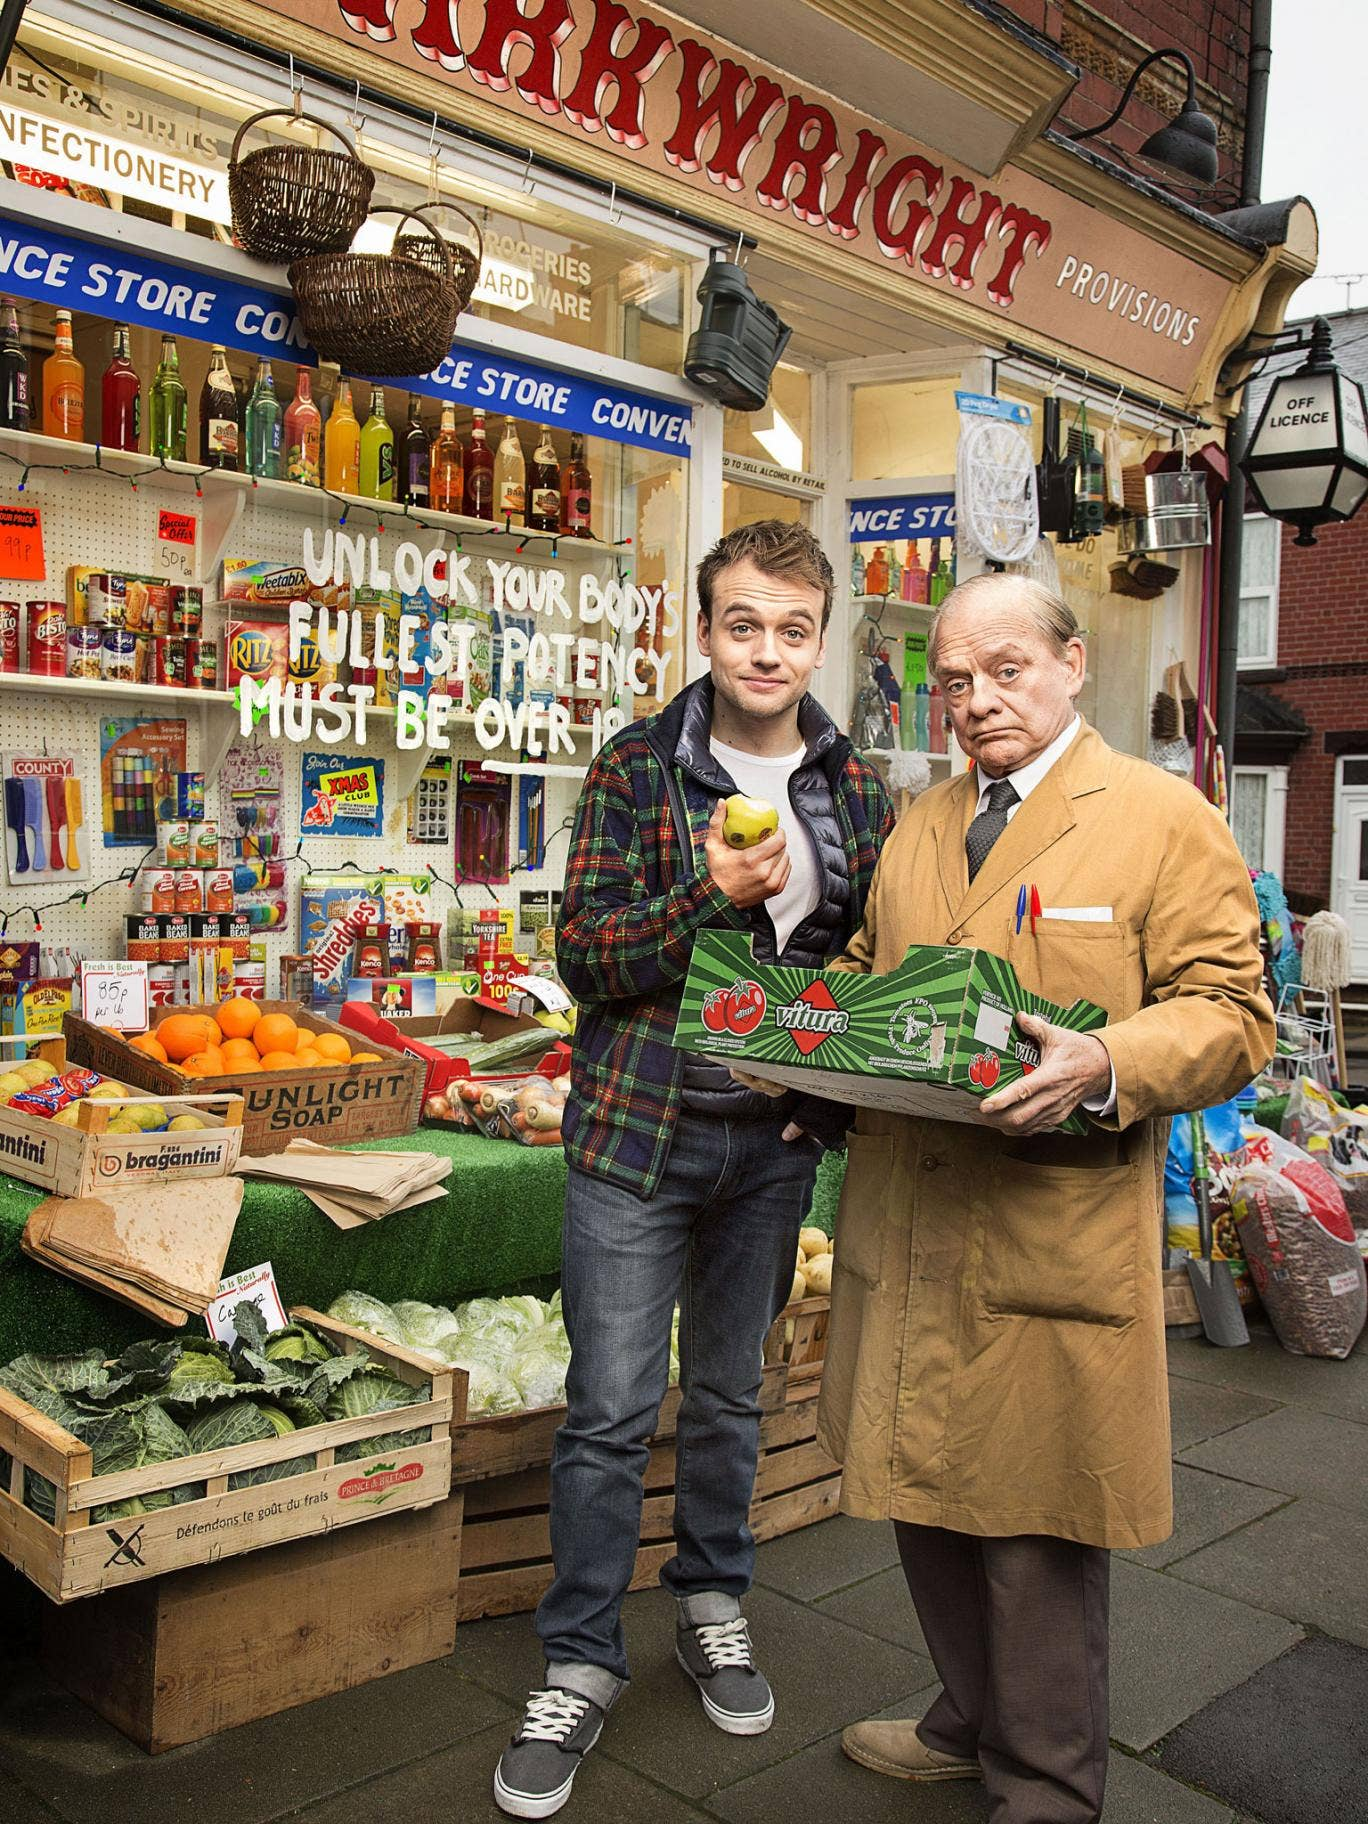 Granville (David Jason) runs the shop with his son Leroy (James Baxter) in 'Still Open All Hours'